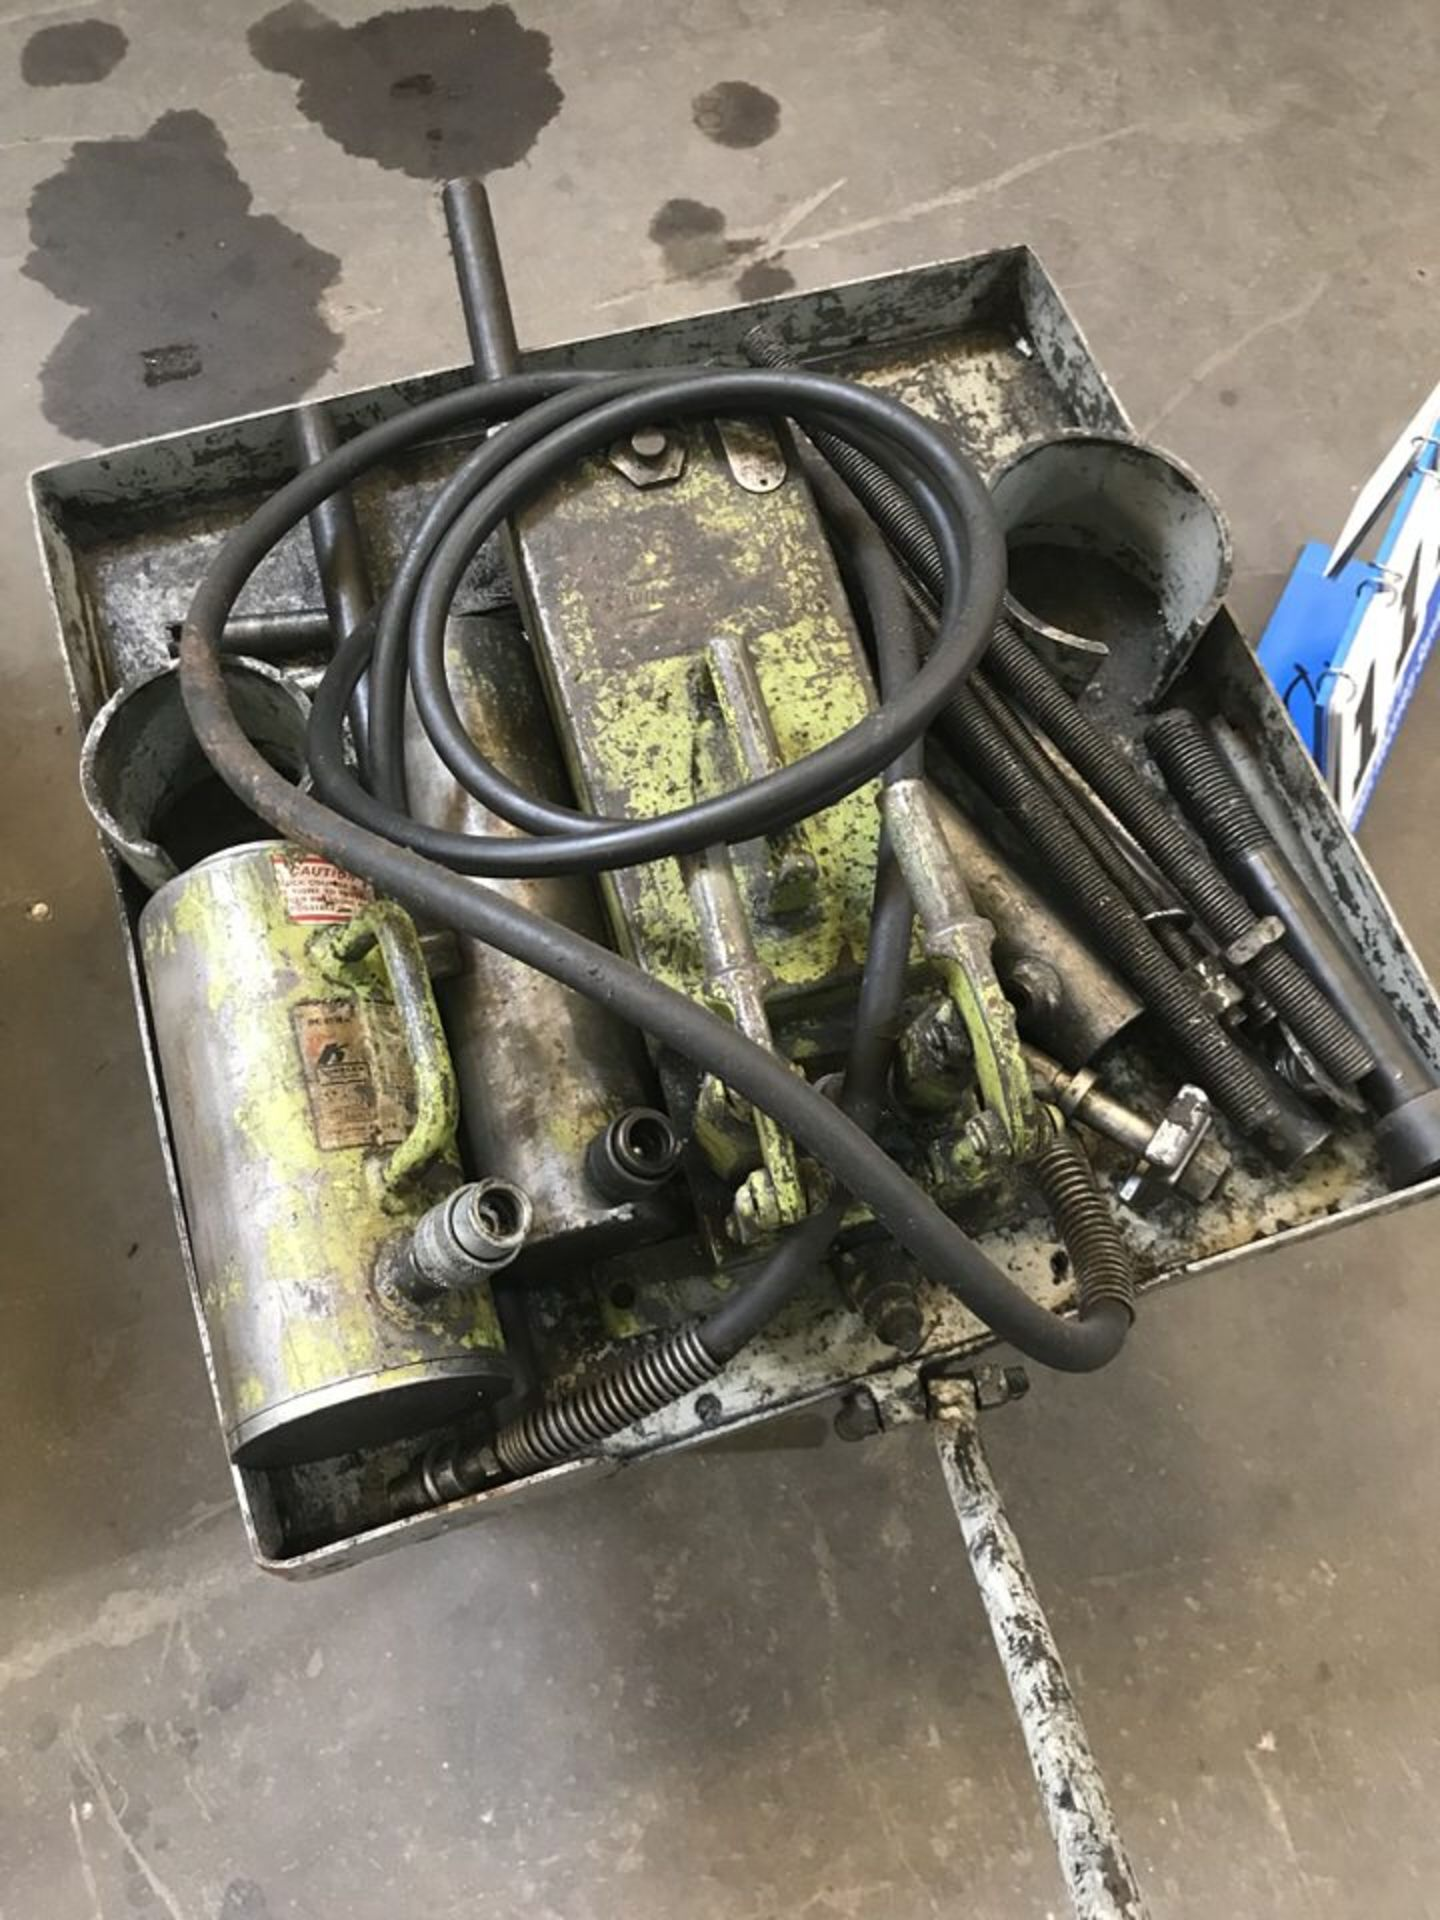 Lot 117 - Misc Pneumatic Tooling (LOCATION: 3421 N SYLVANIA, FT WORTH, TX, 76111)